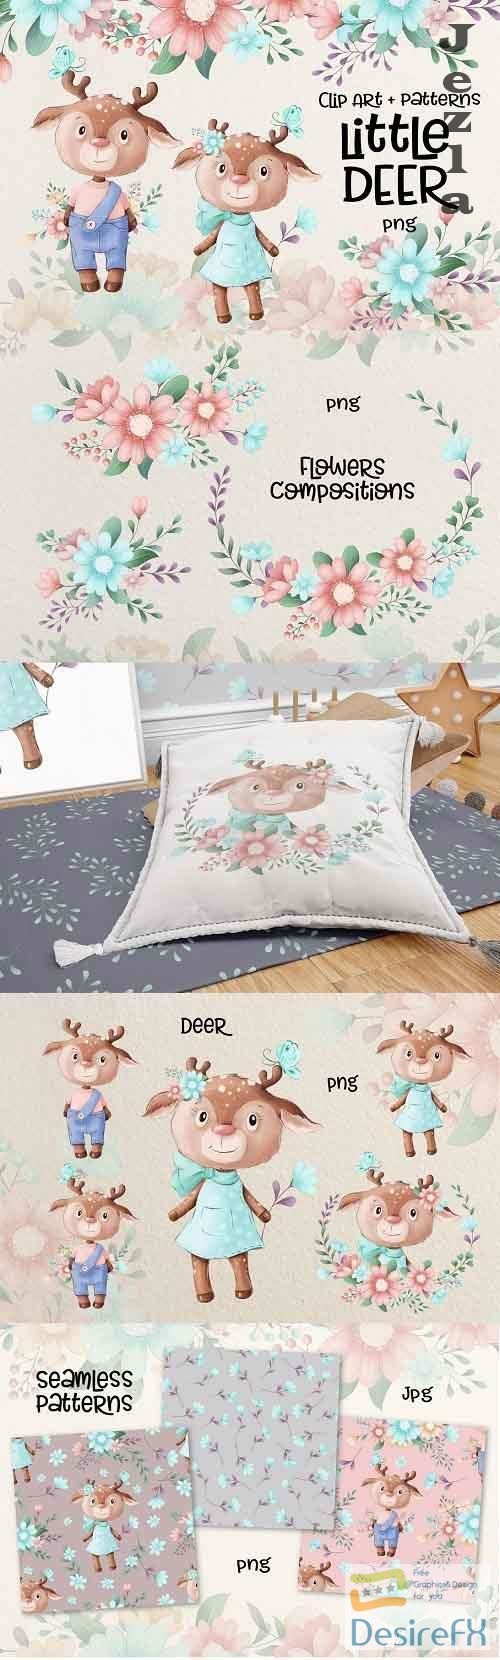 Little deer - 4980643